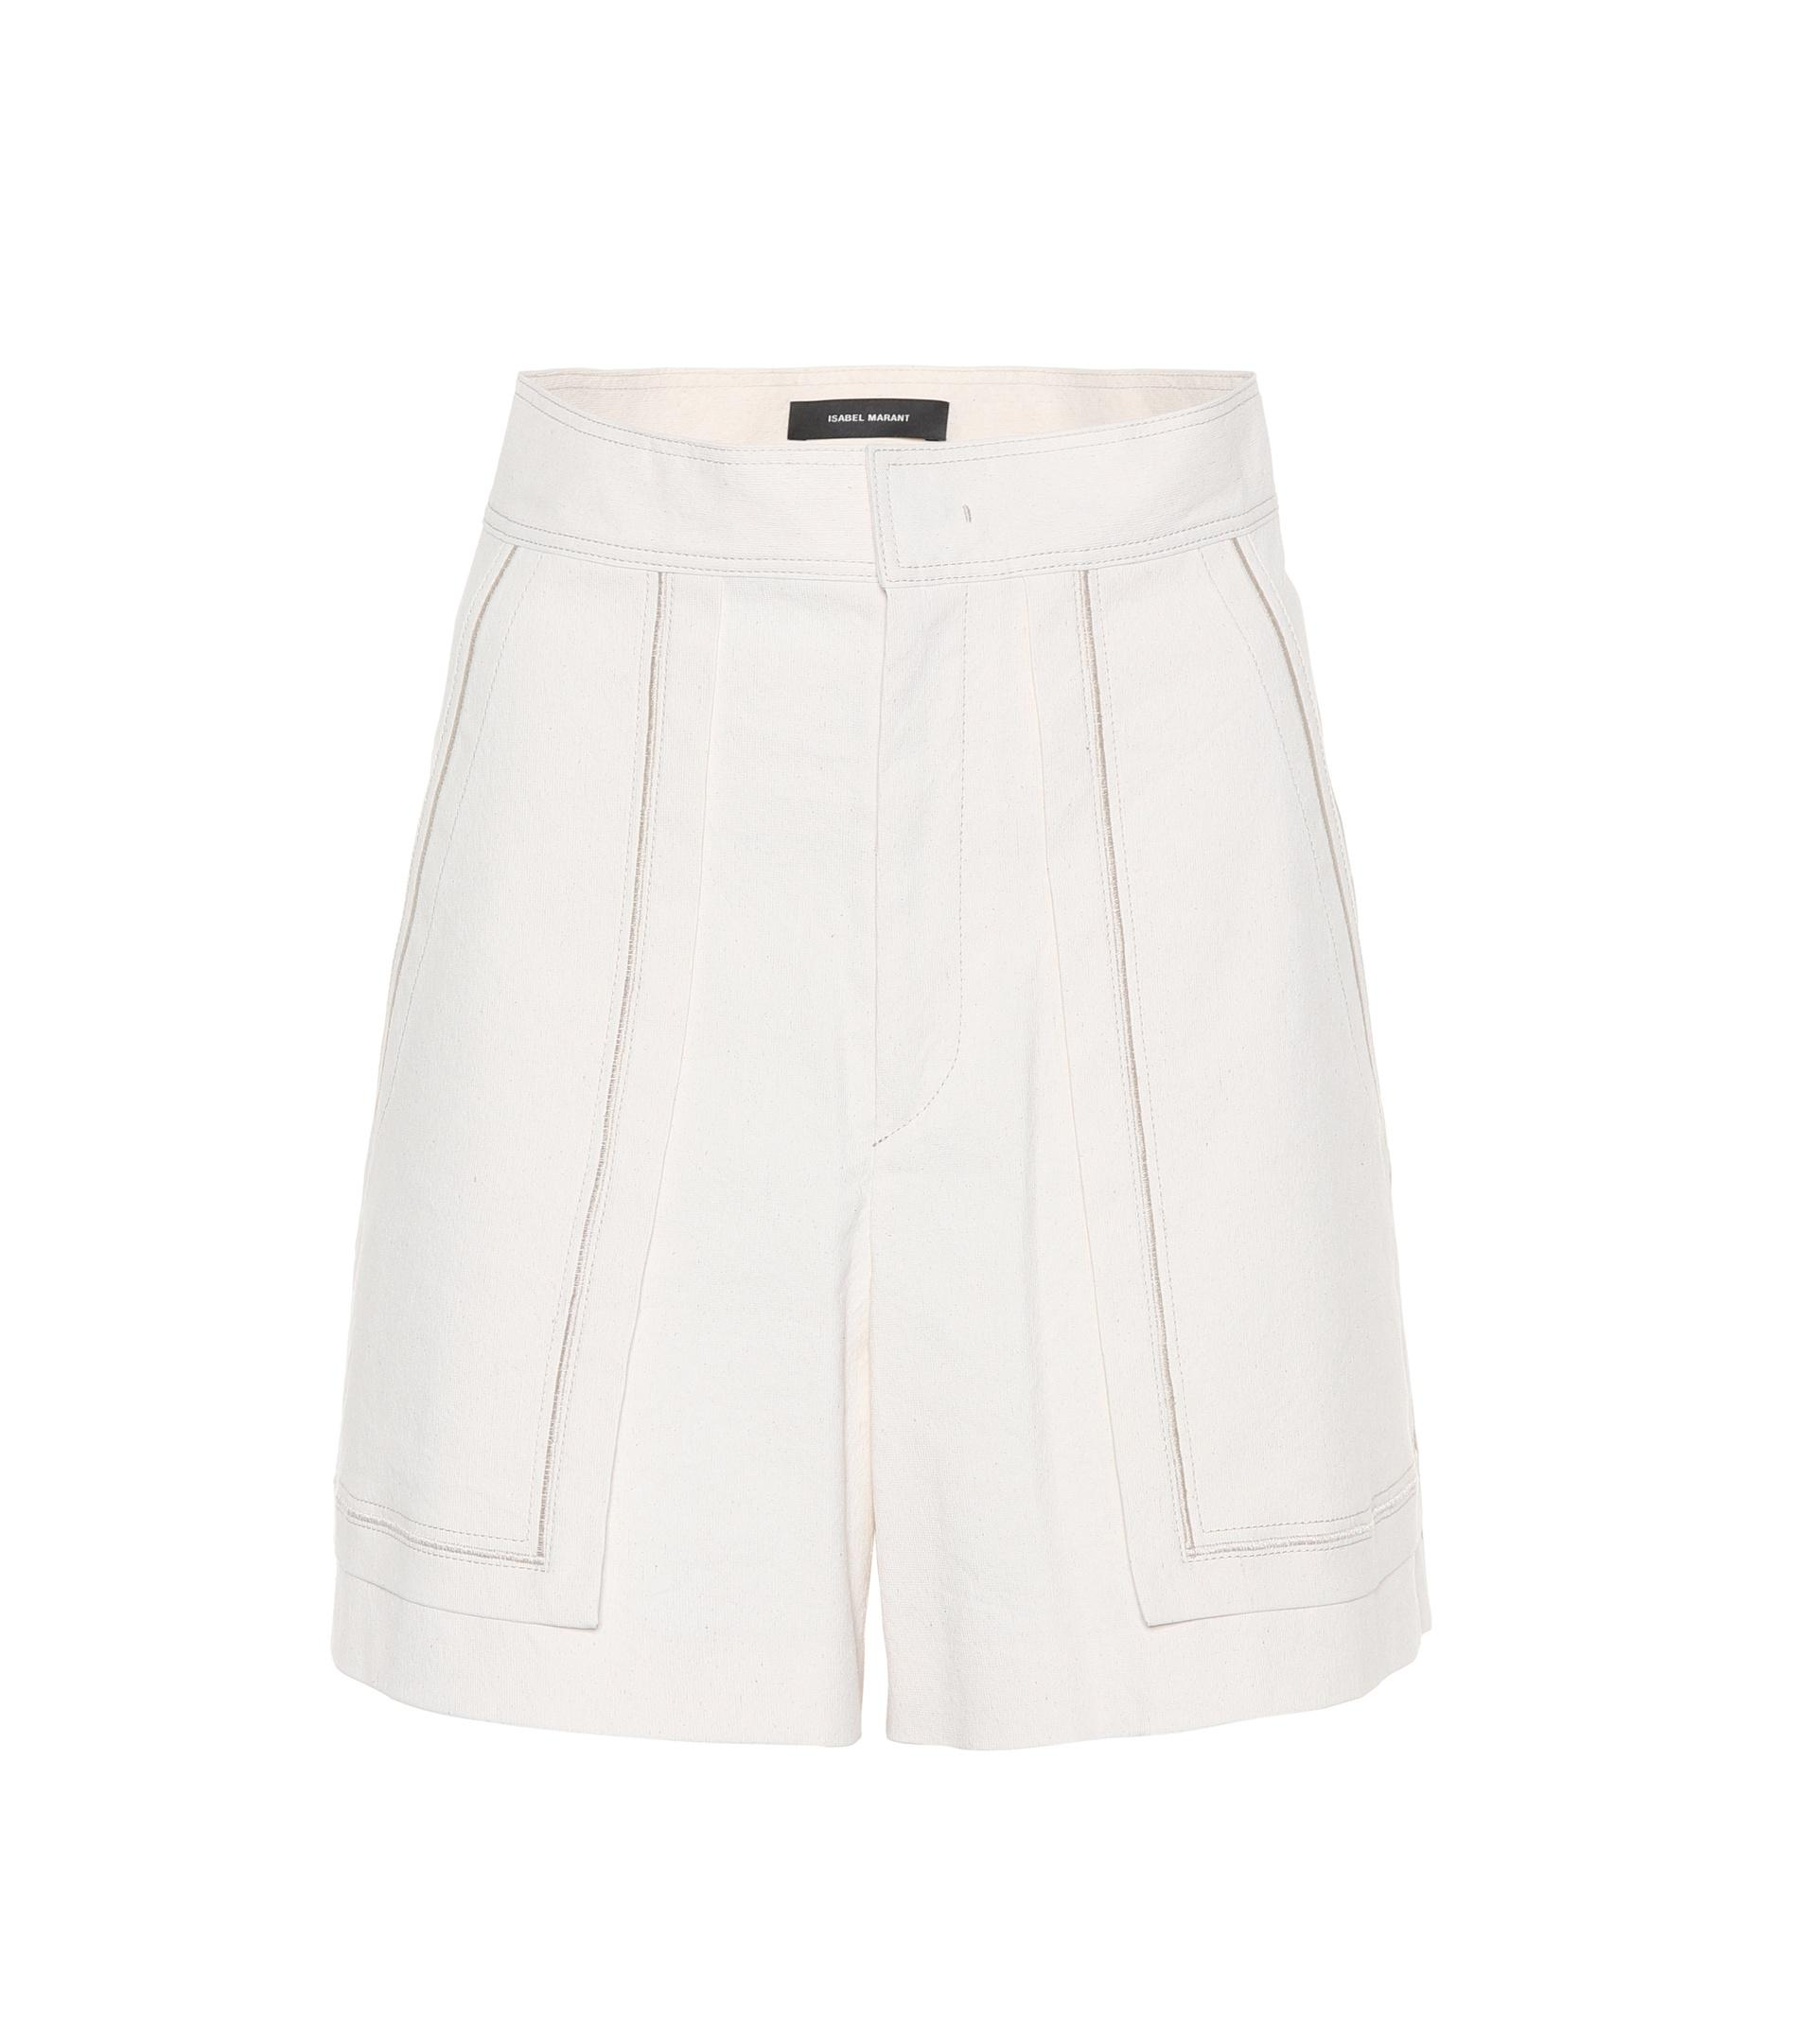 Comfortable Cheap Online Lucky cotton shorts Isabel Marant Sast Cheap Price Cheap Sale High Quality With Paypal Online Pre Order Sale Online kCiMhR